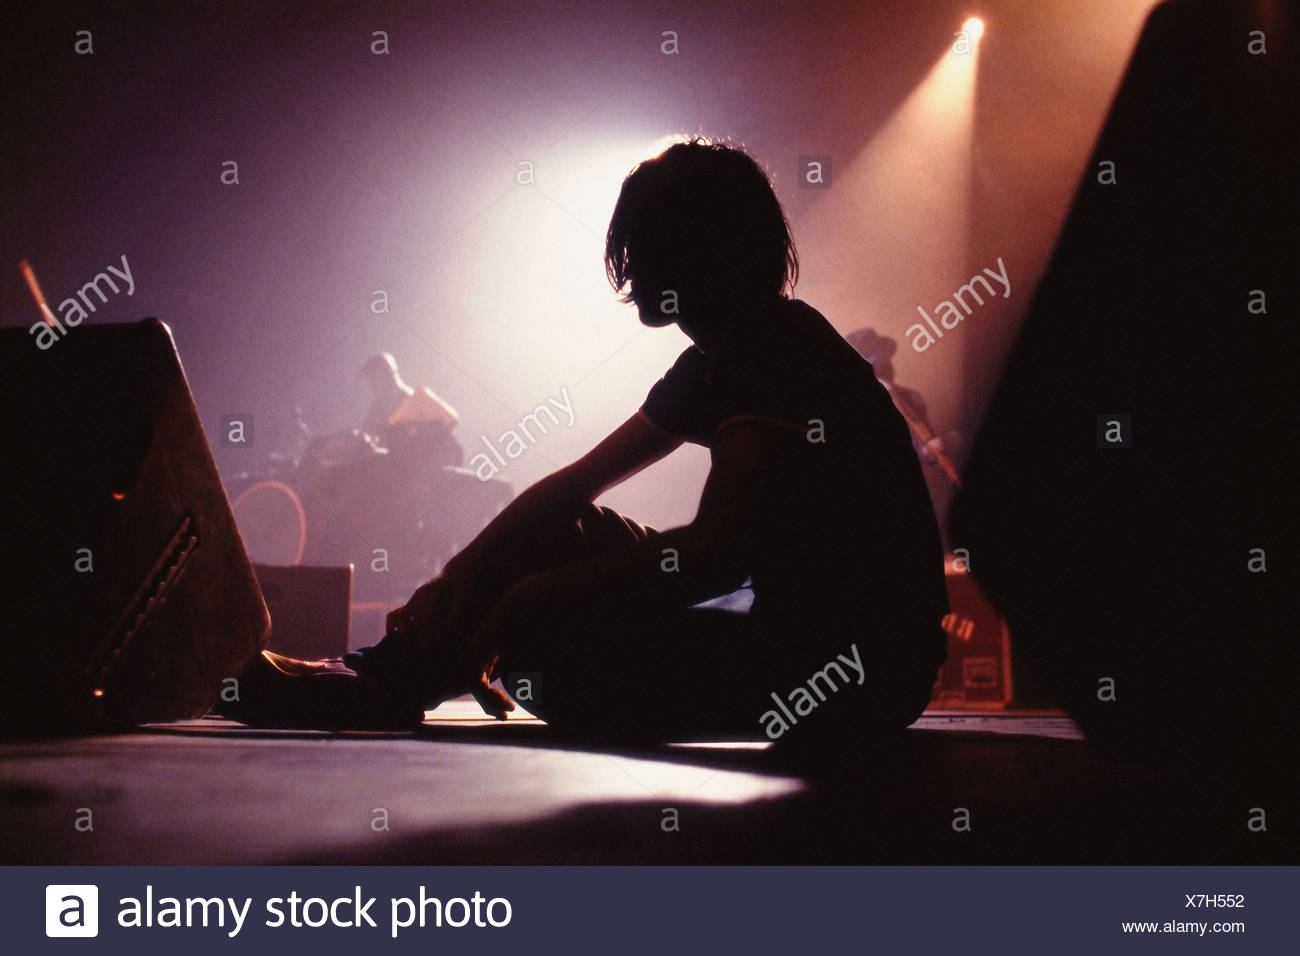 Silhouetted man sitting on stage - Stock Image